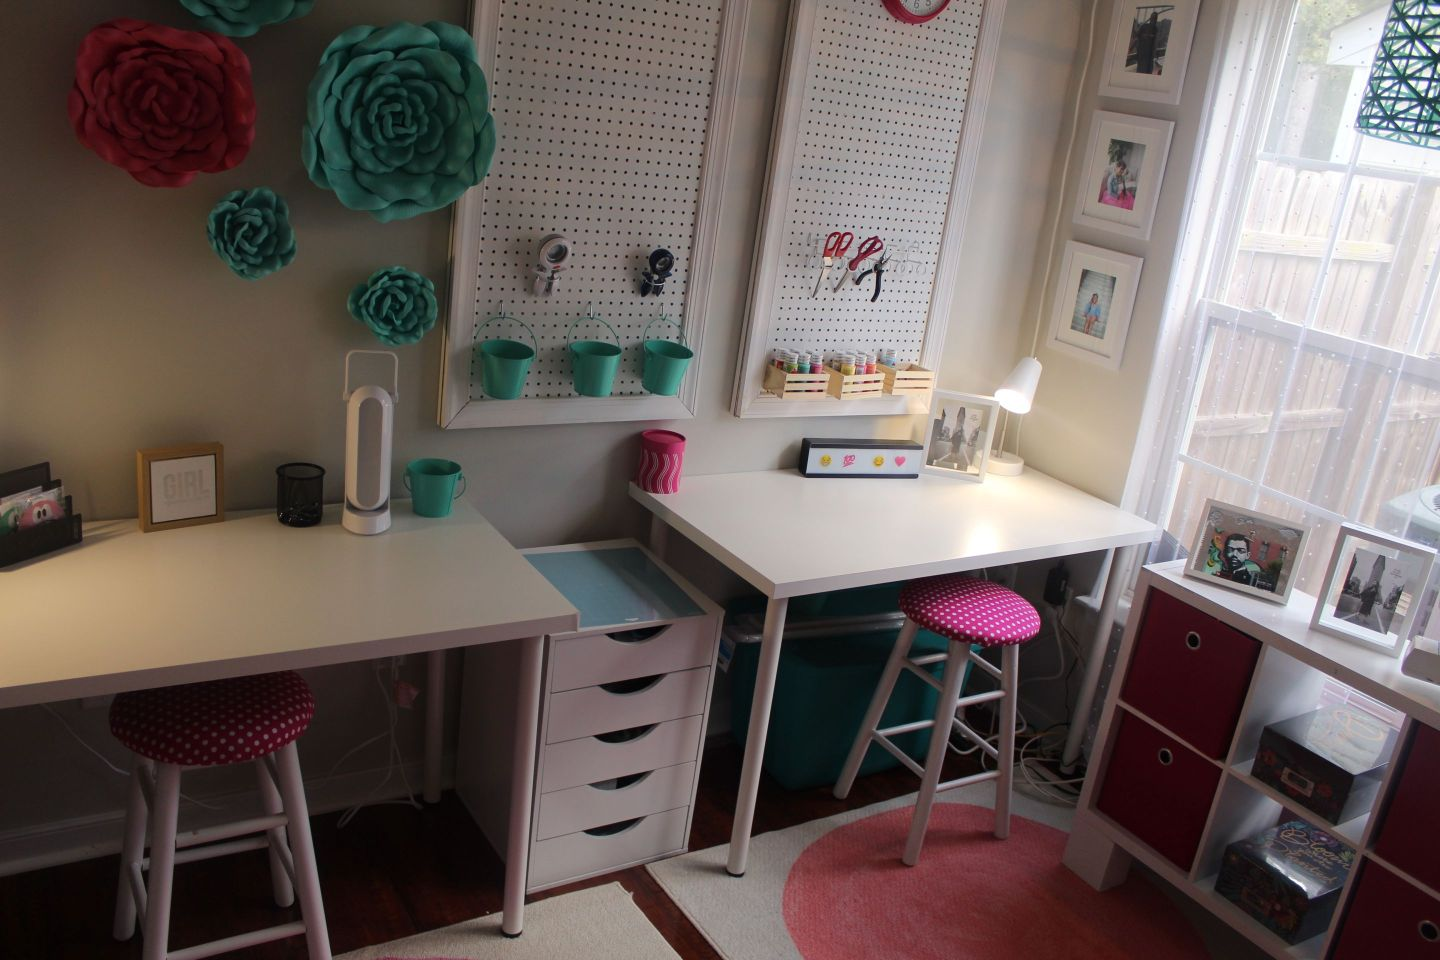 20180929023132_IMG_0258 Tips for Designing a Craft Room from an Interior Designer